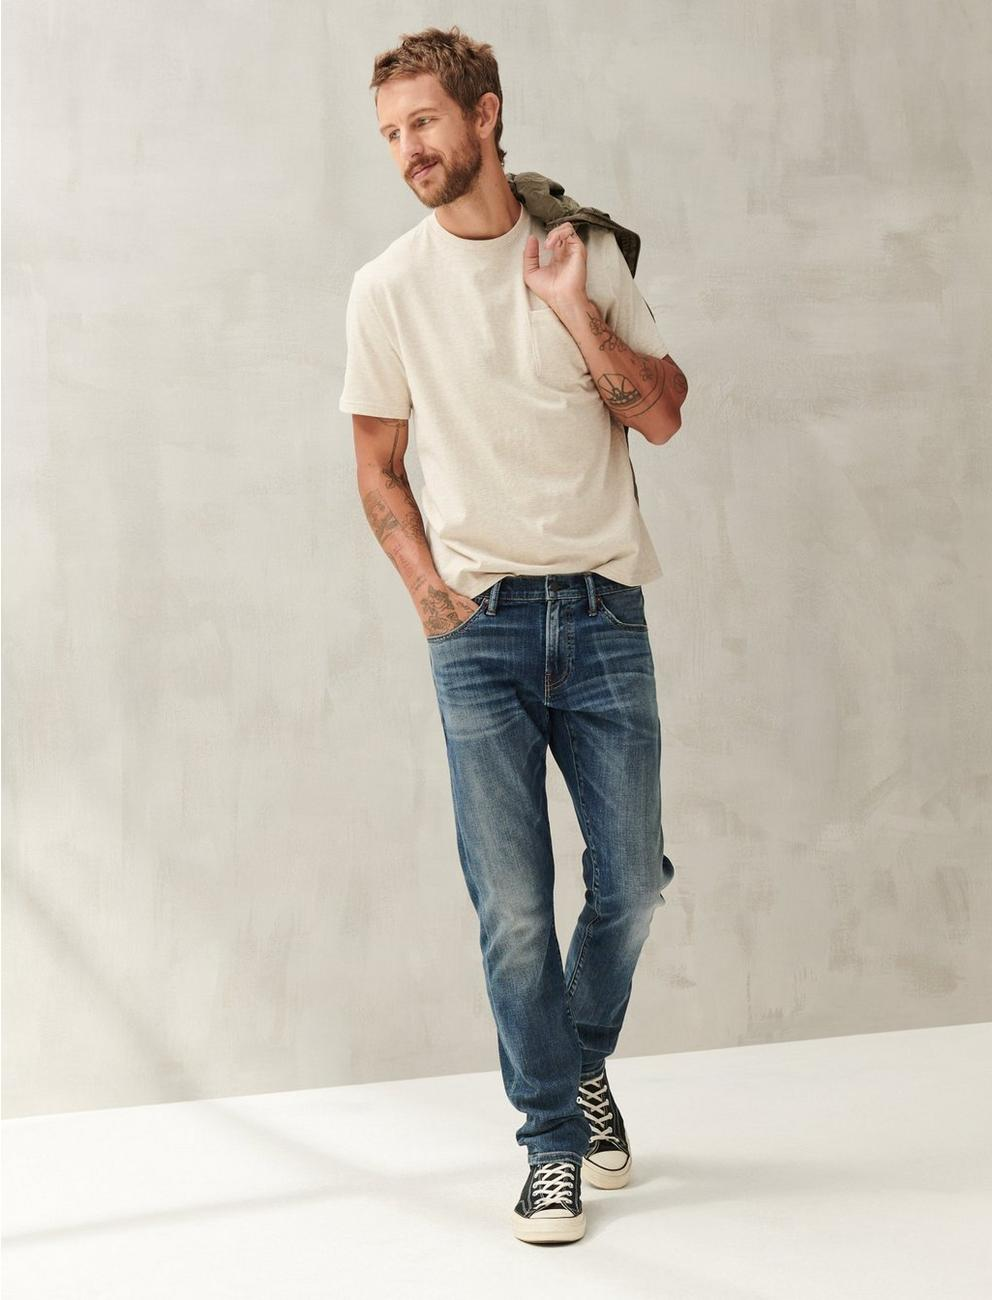 110 SLIM COOLMAX ALL SEASON TECHNOLOGY JEAN,